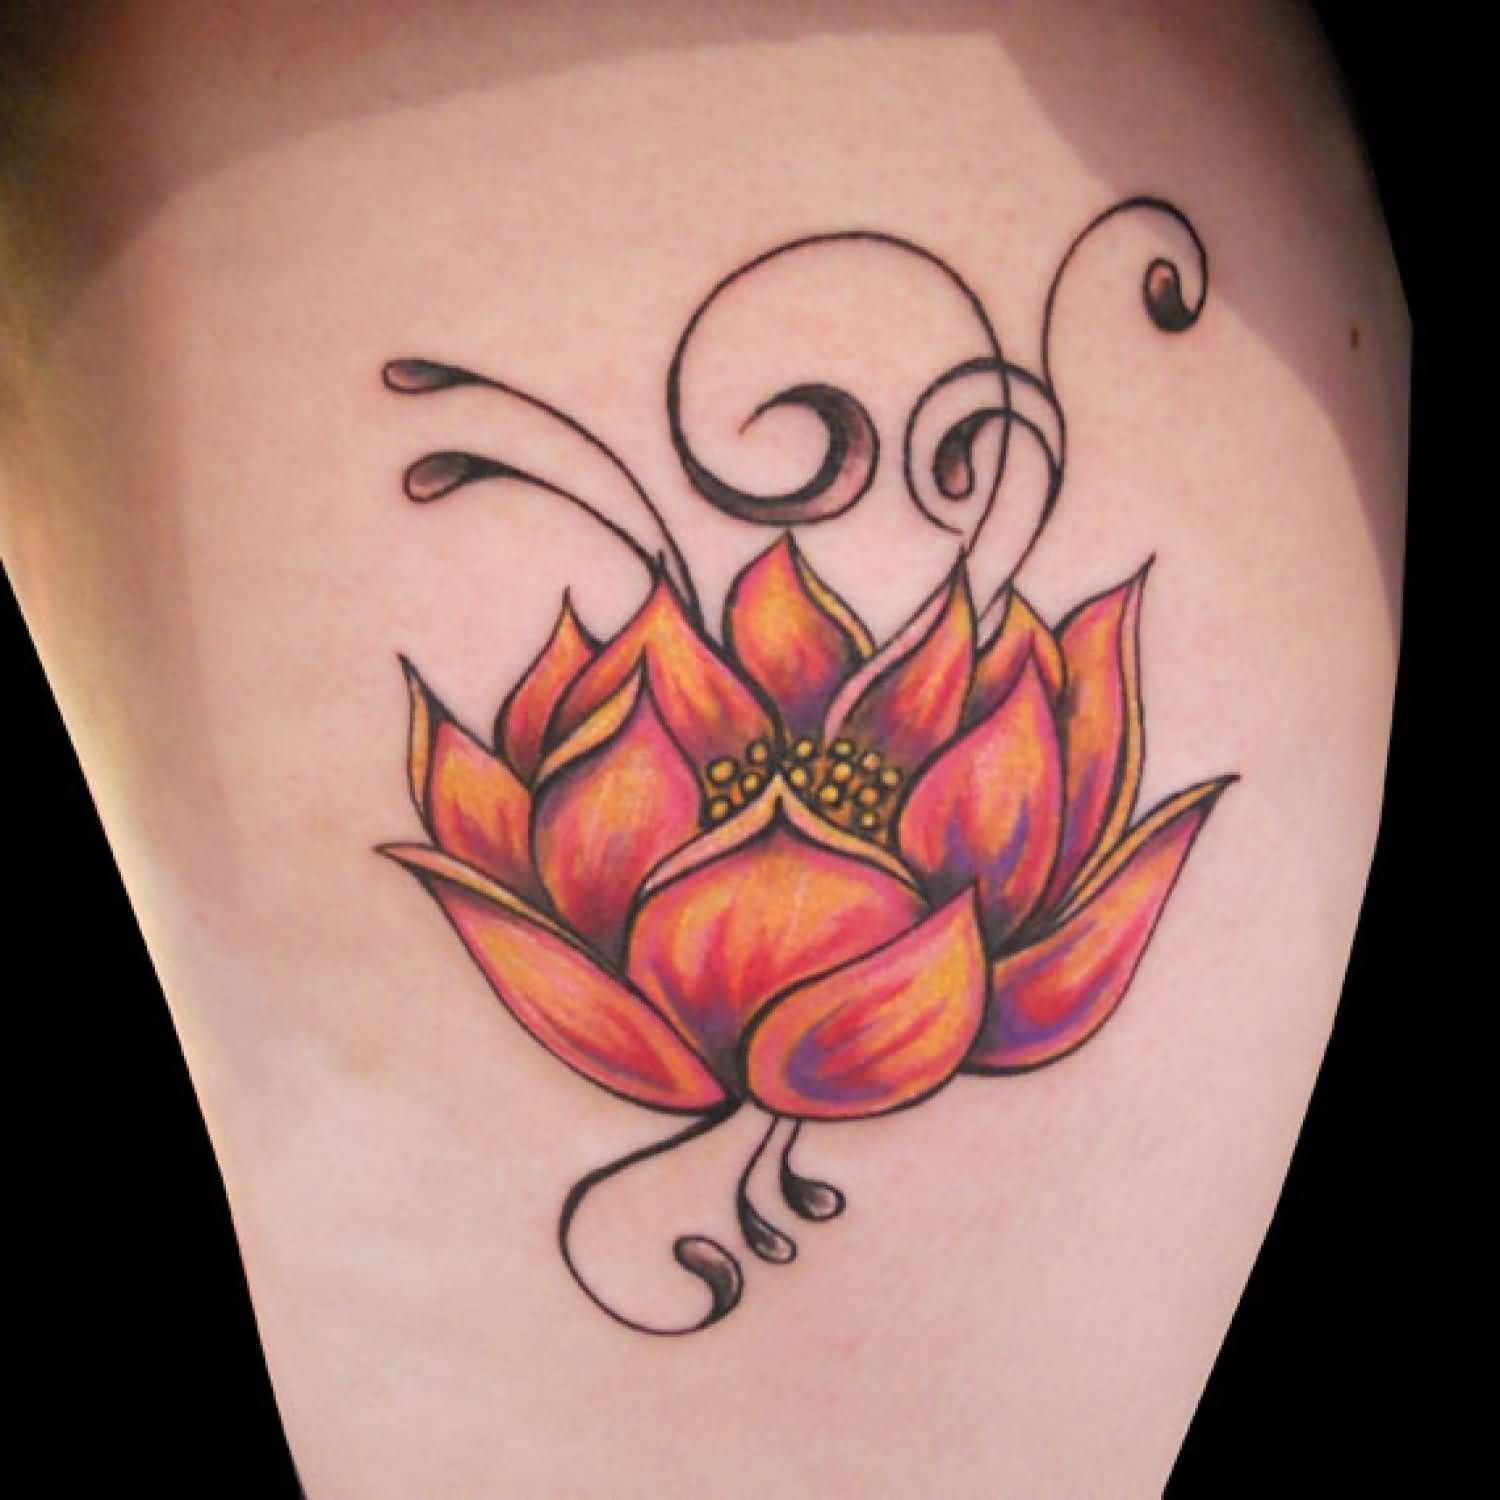 Awesome color lotus flower tattoo on side leg tattoo designs awesome color lotus flower tattoo on side leg izmirmasajfo